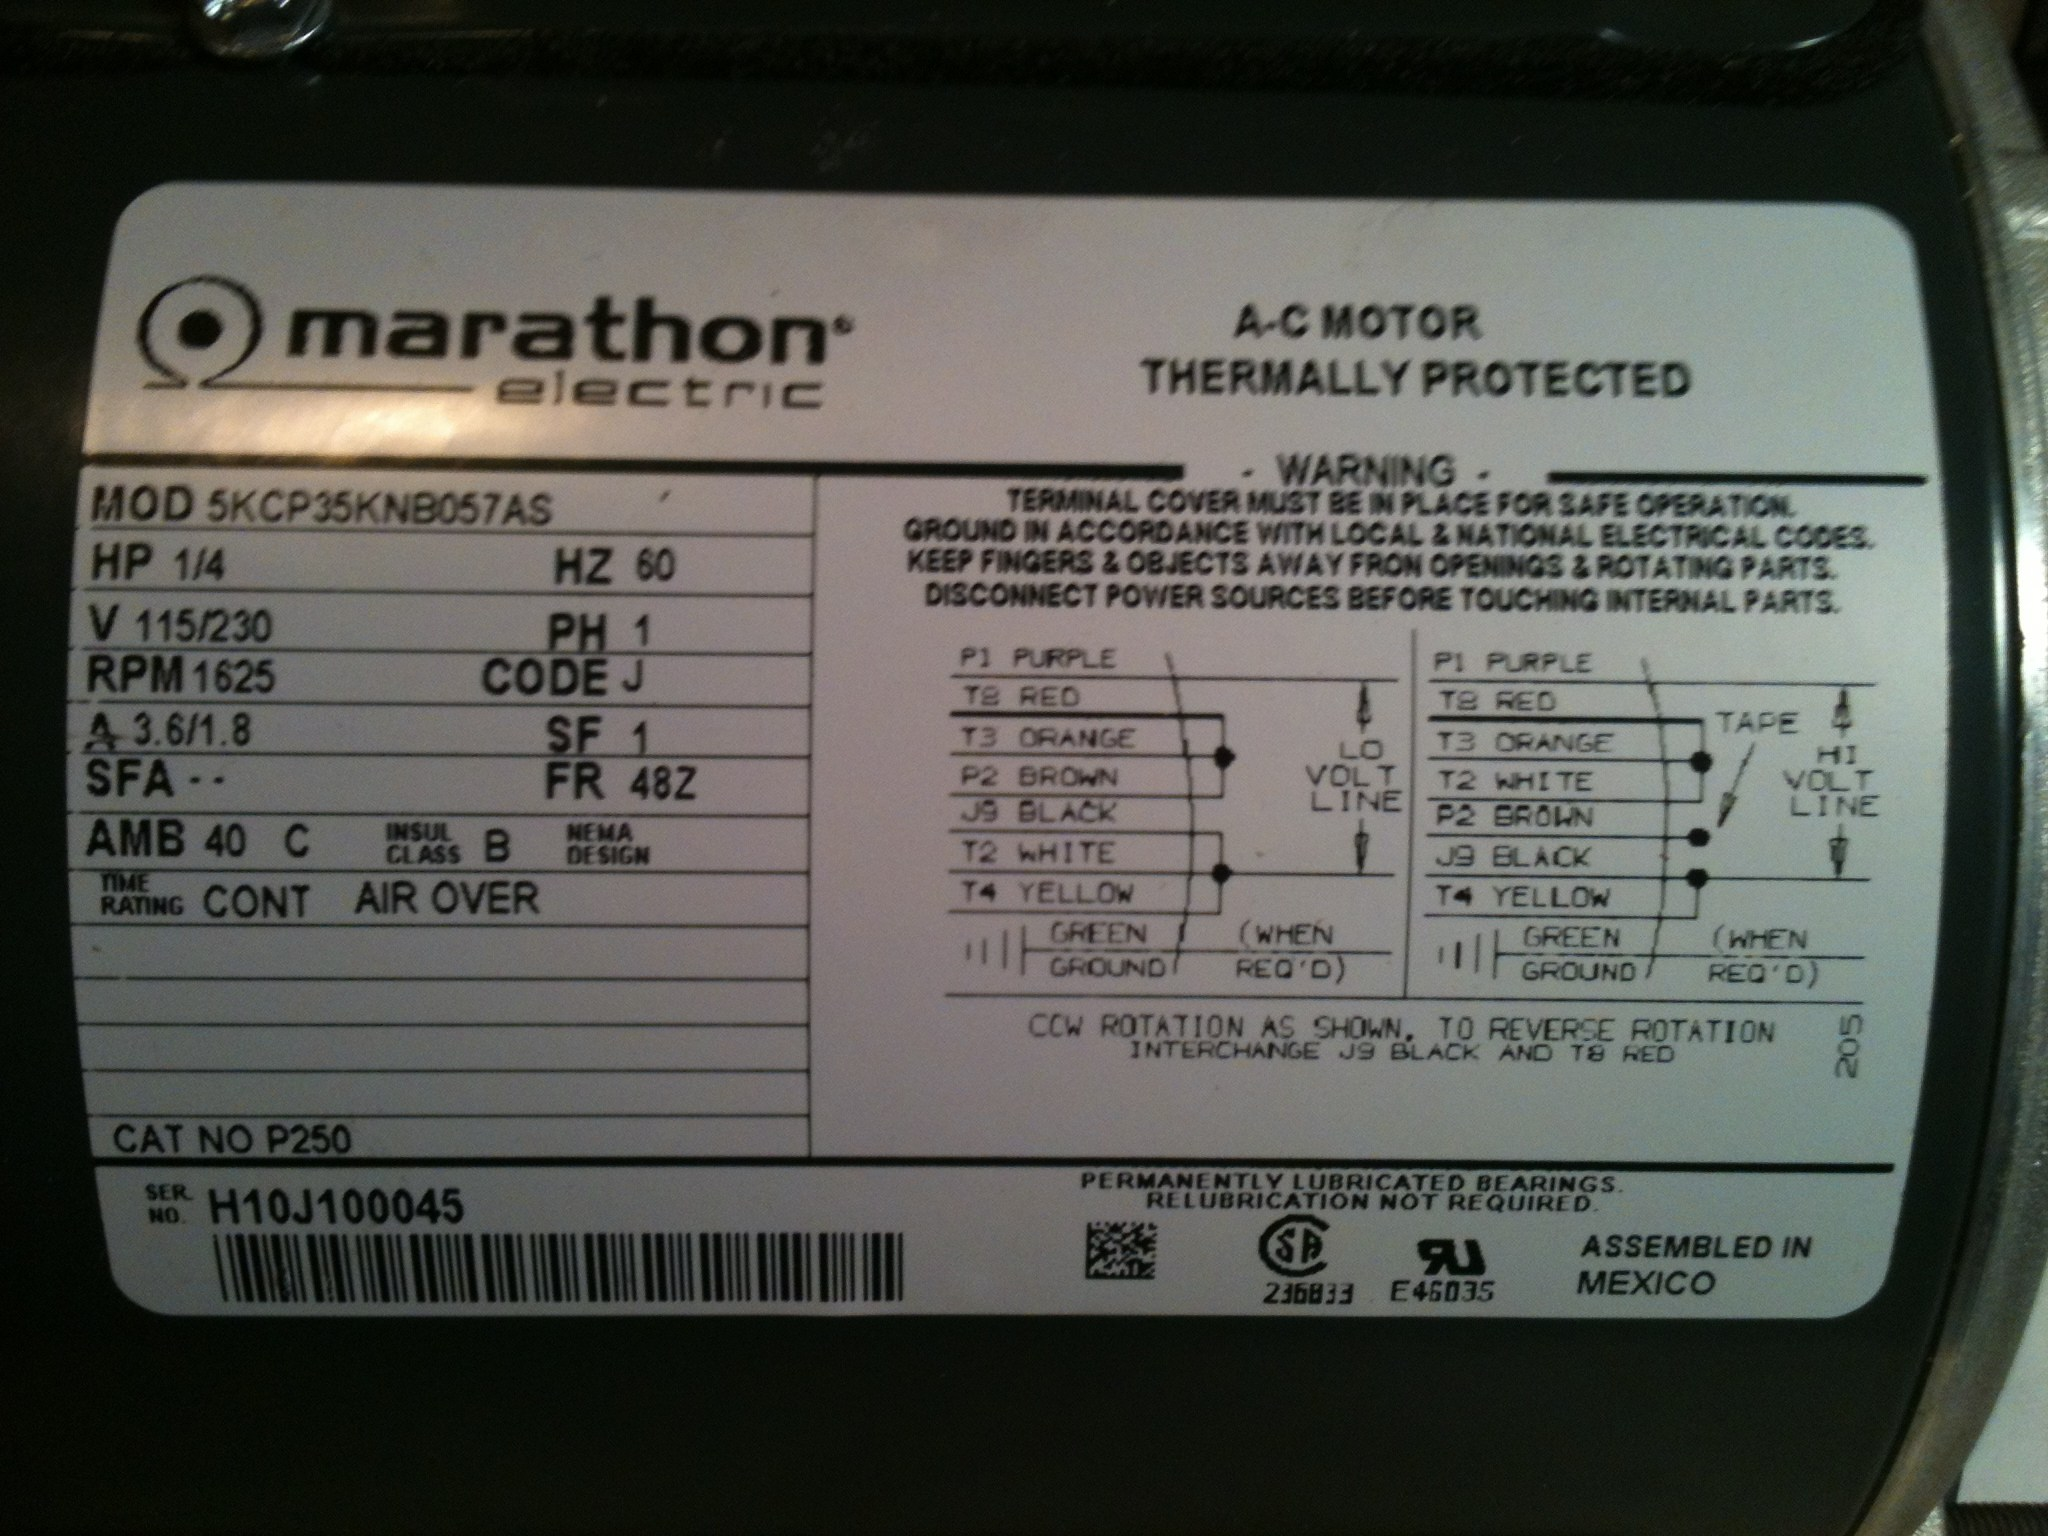 Marathon 3/4 Hp Motor Wiring Diagram from static-resources.imageservice.cloud